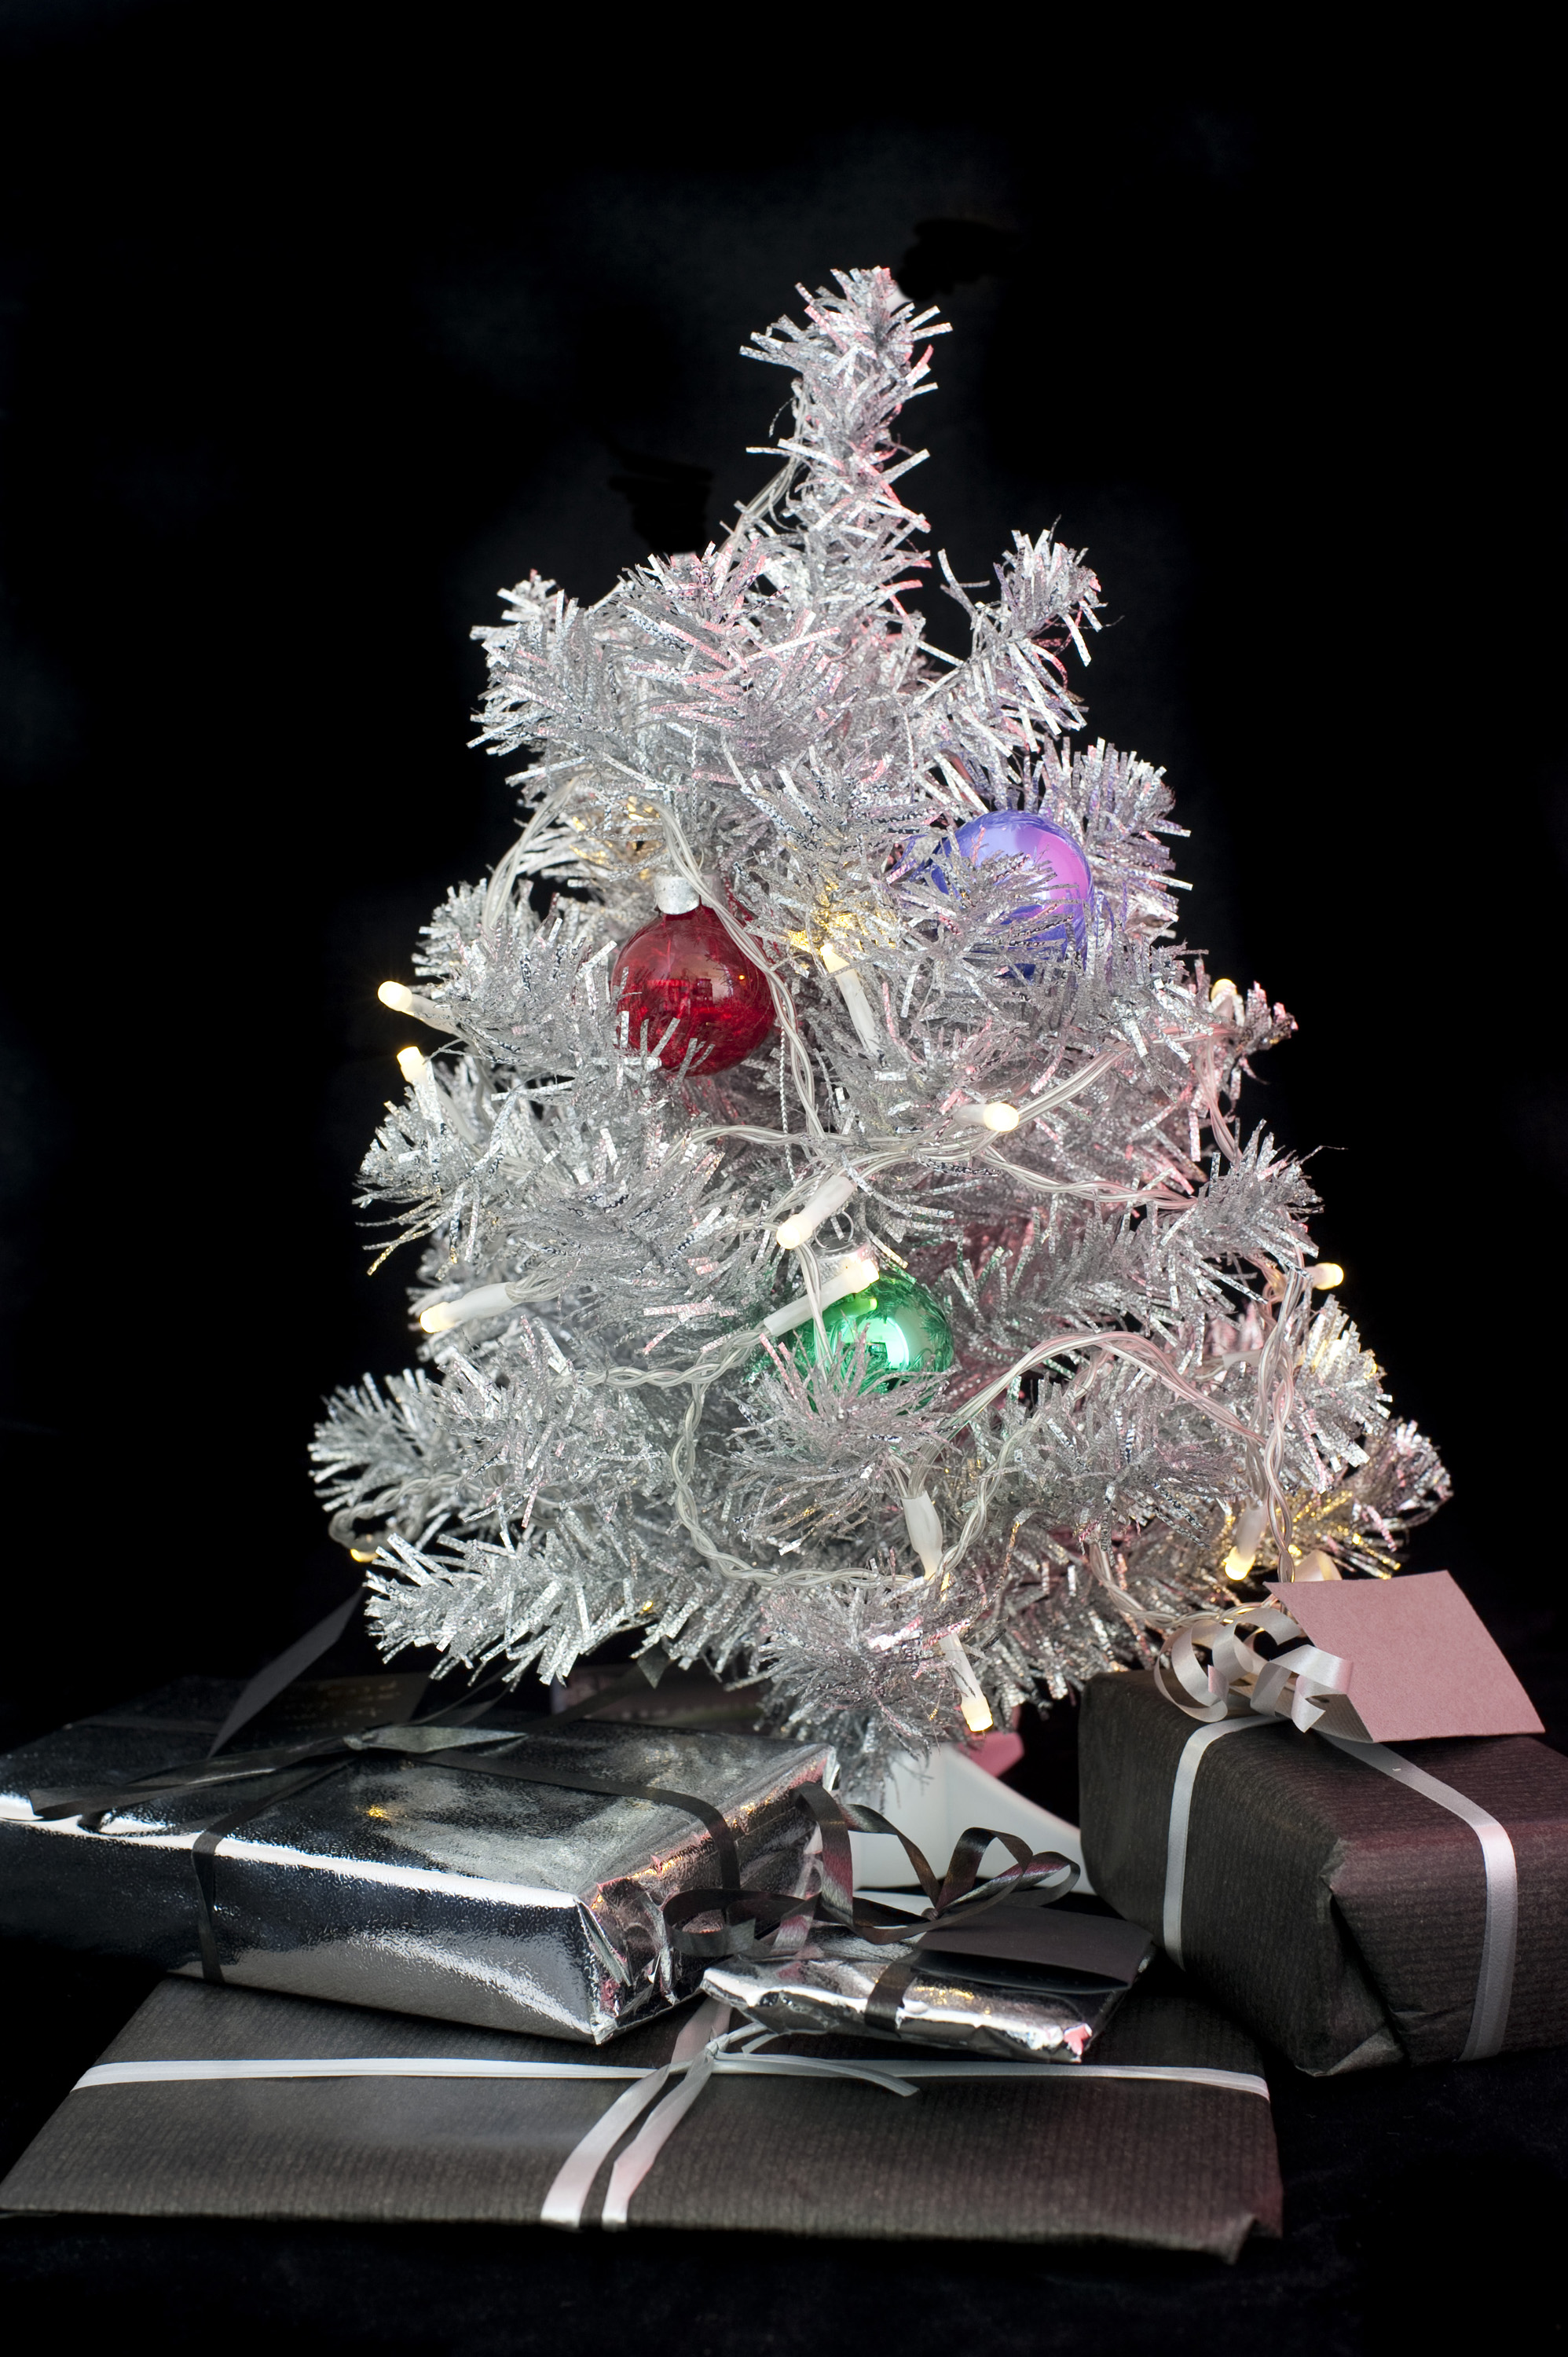 a silver tinsel christmas tree and decorations with gifts beneath